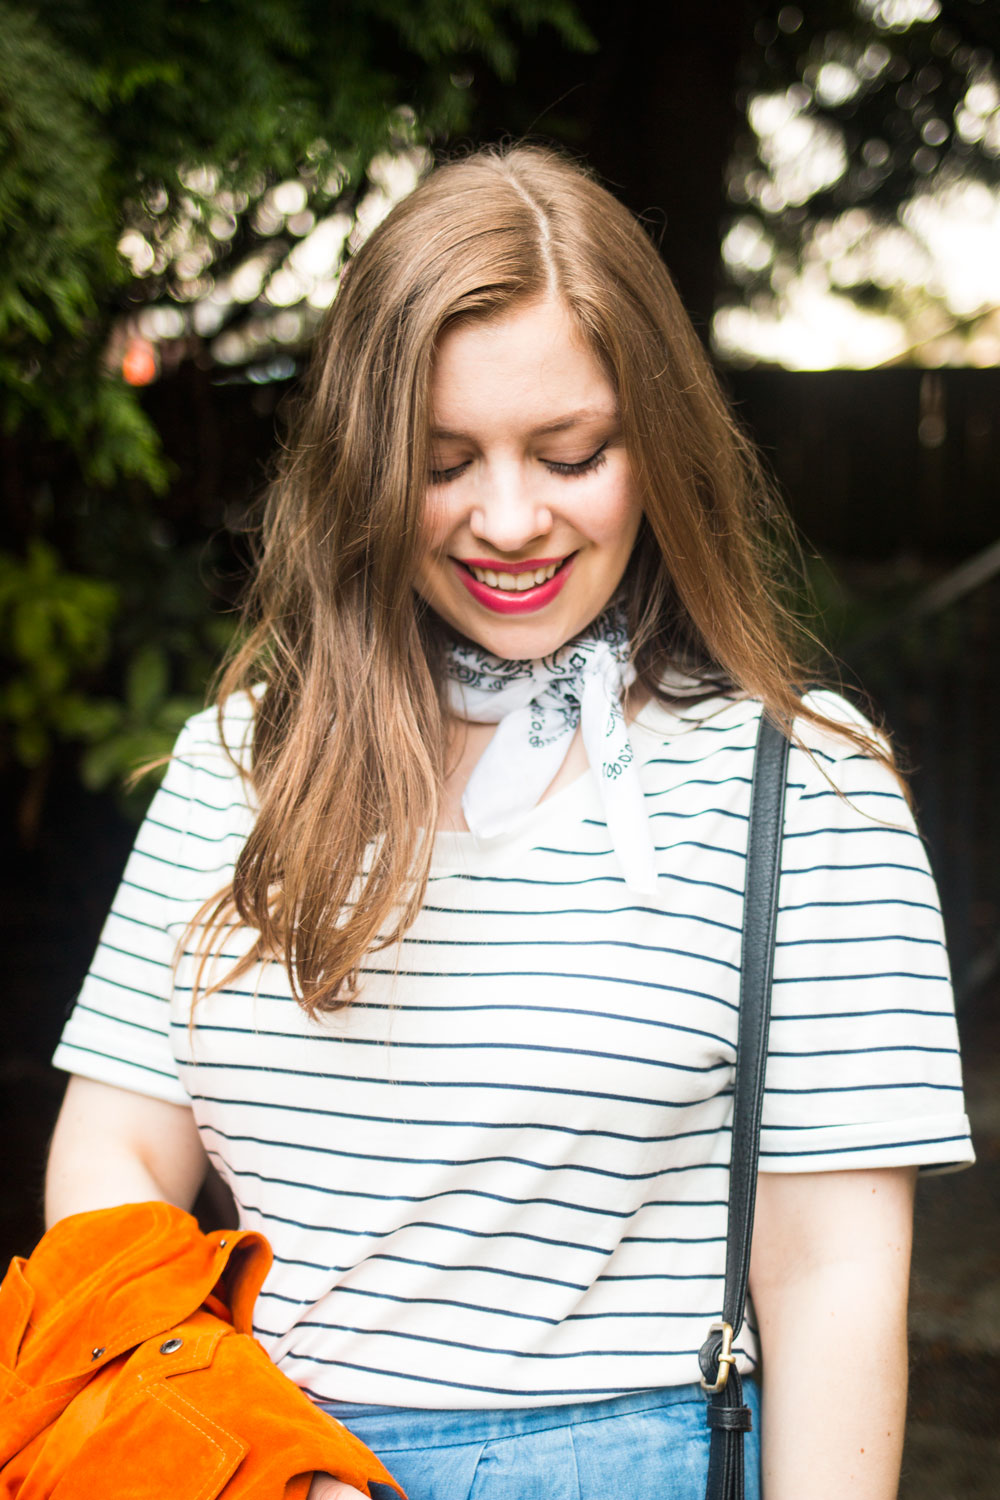 Elizabeth & Clarke Ash Striped T-Shirt with Culottes Outfit // Hello Rigby Seattle Fashion Blog